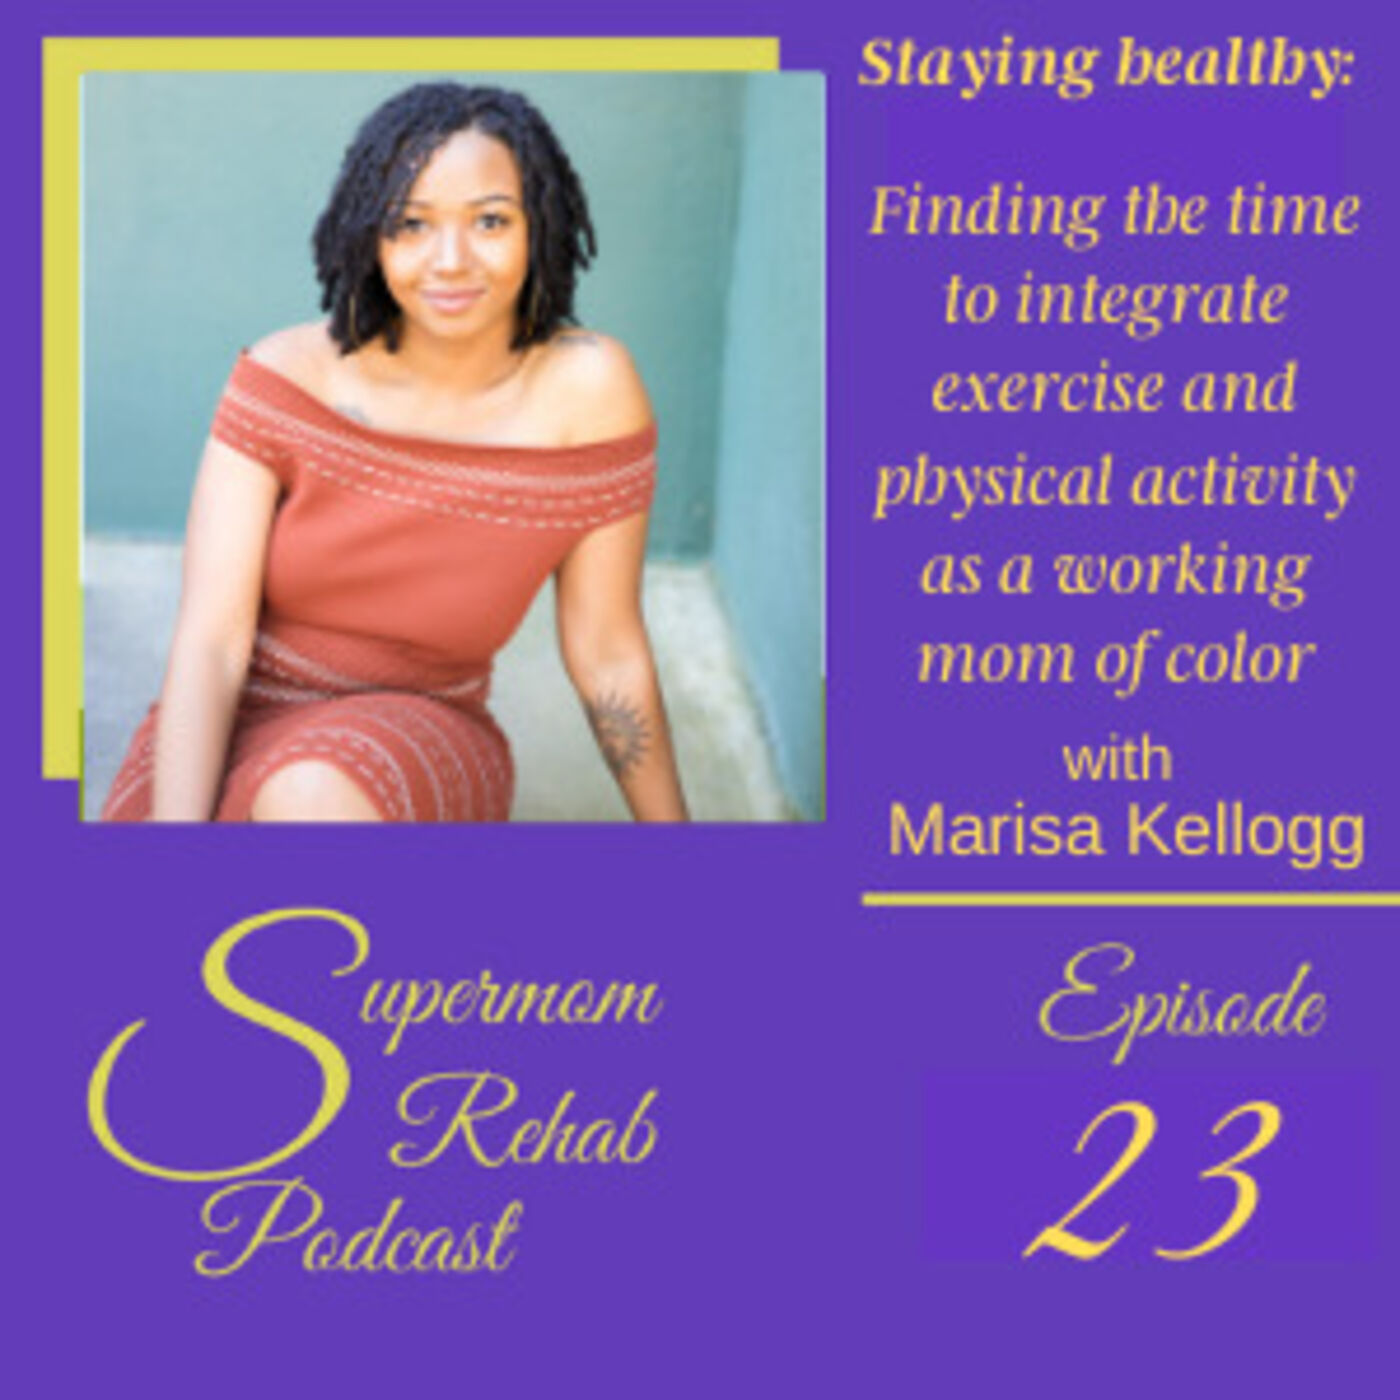 Episode 23: Staying healthy: Finding the time to integrate exercise and physical activity as a working mom of color